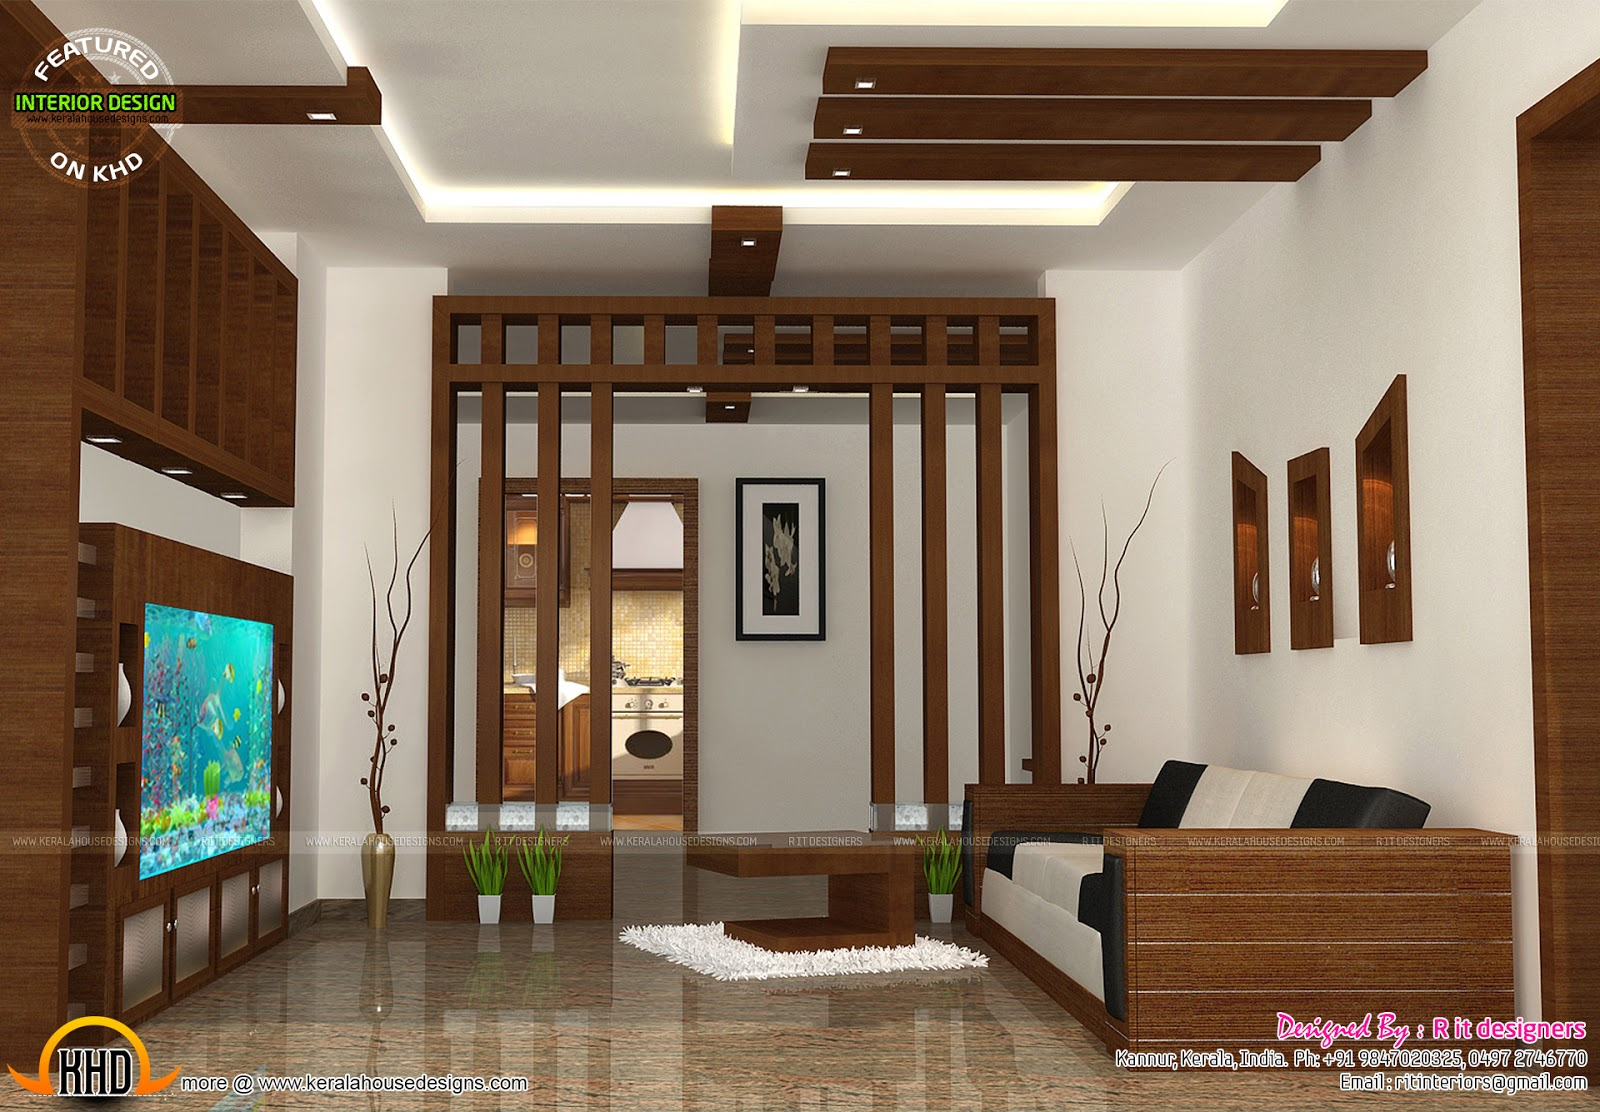 Wooden finish interiors kerala home design and floor plans for Room design ideas wood